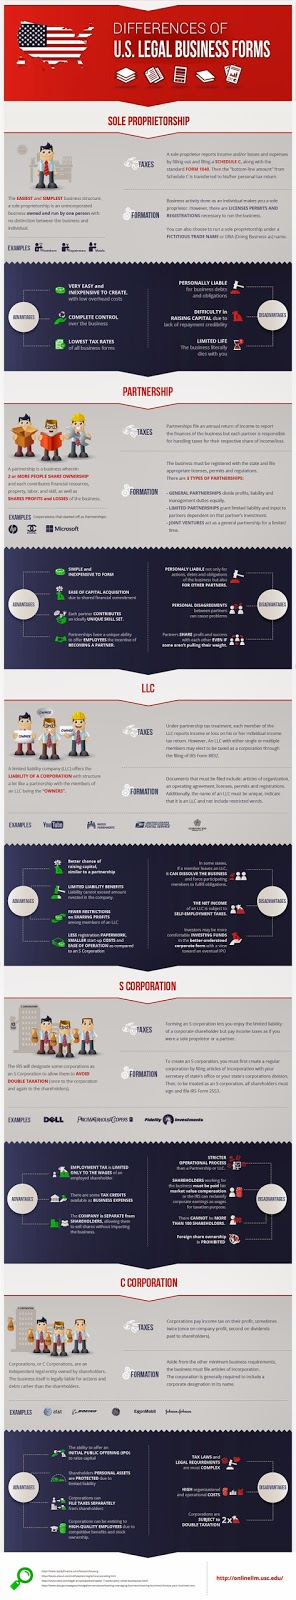 http://www.entrepreneur.com/dbimages/article/1403798960-how-incorporate-business-cheat-sheet-infographic.jpg